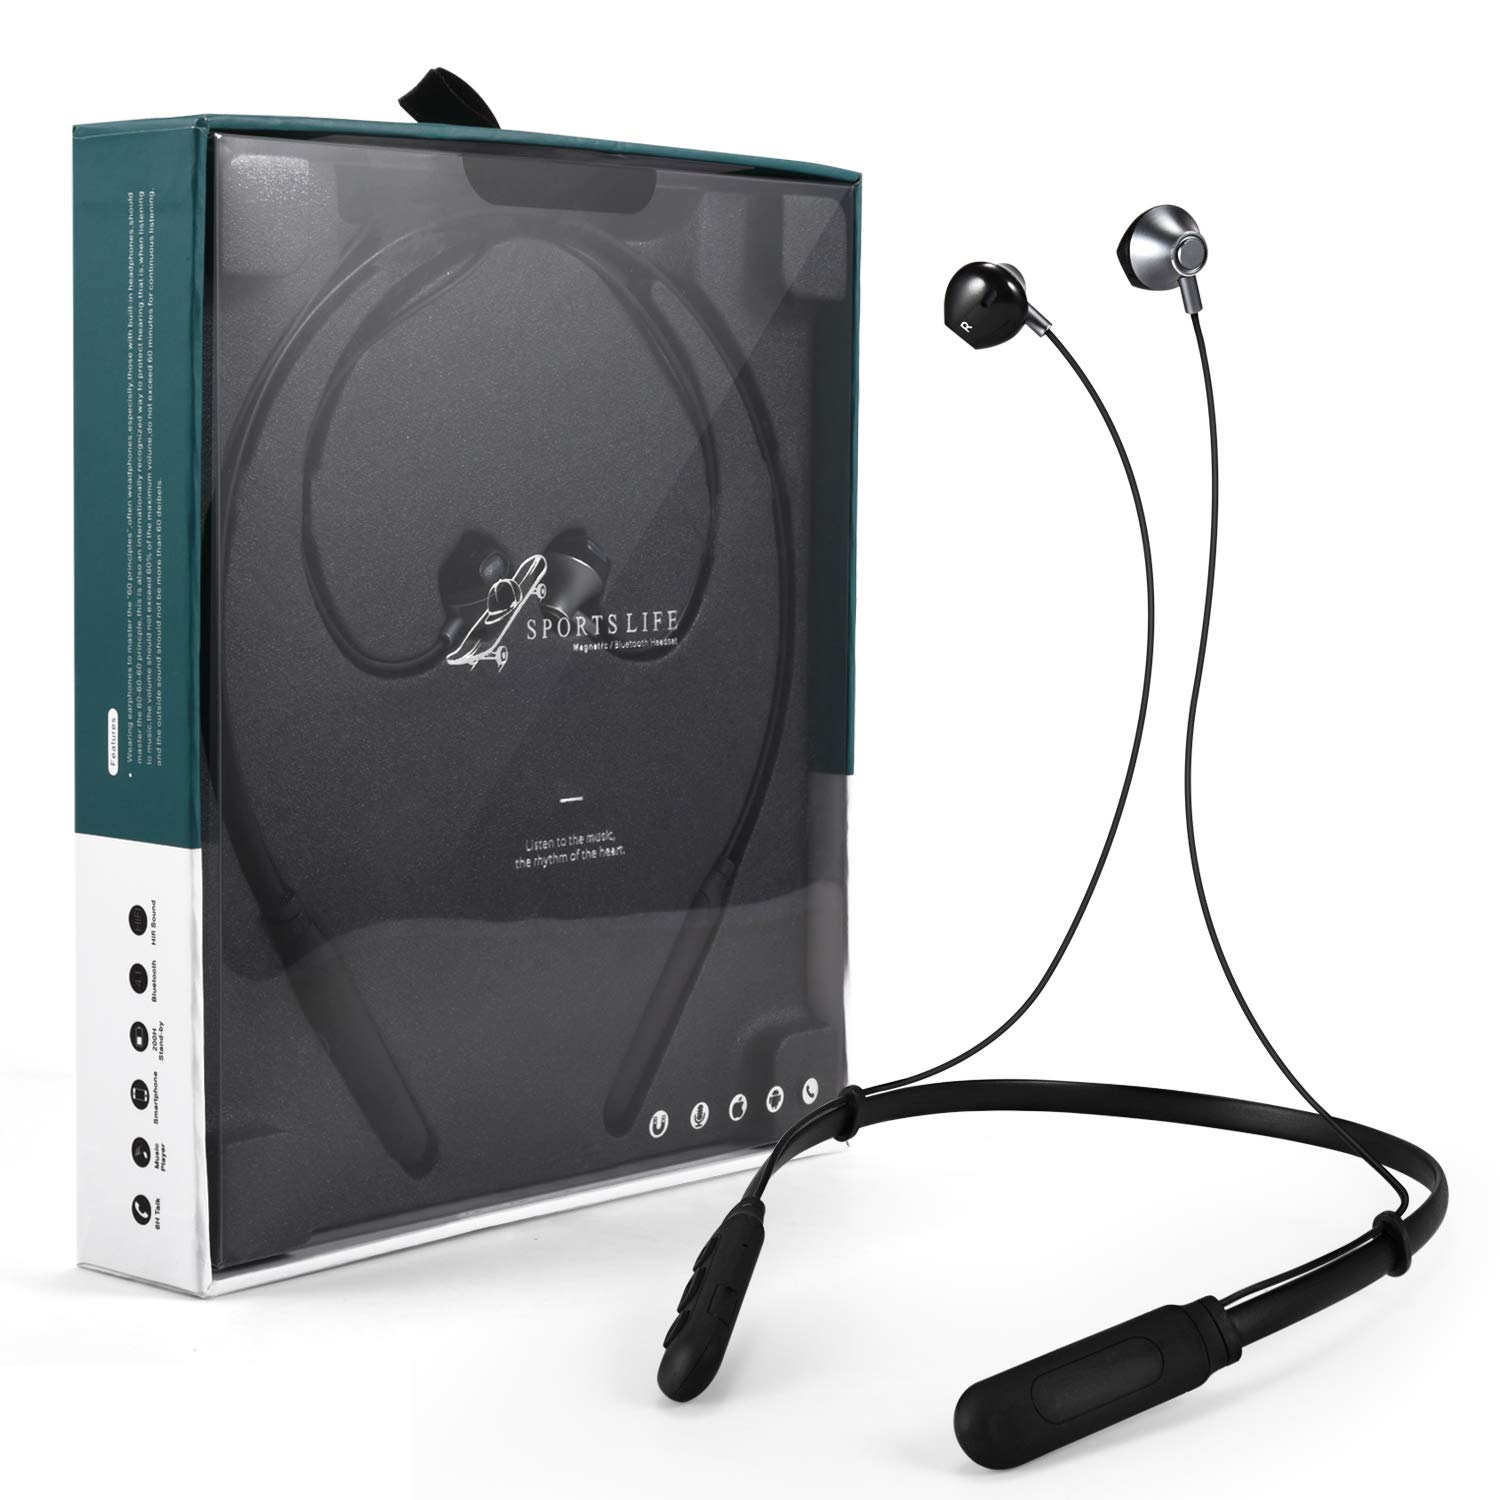 Bluetooth Headphone Wireless Neckband Headset- Lightweight Stereo Noise Cancelling Earbuds w/Mic Black